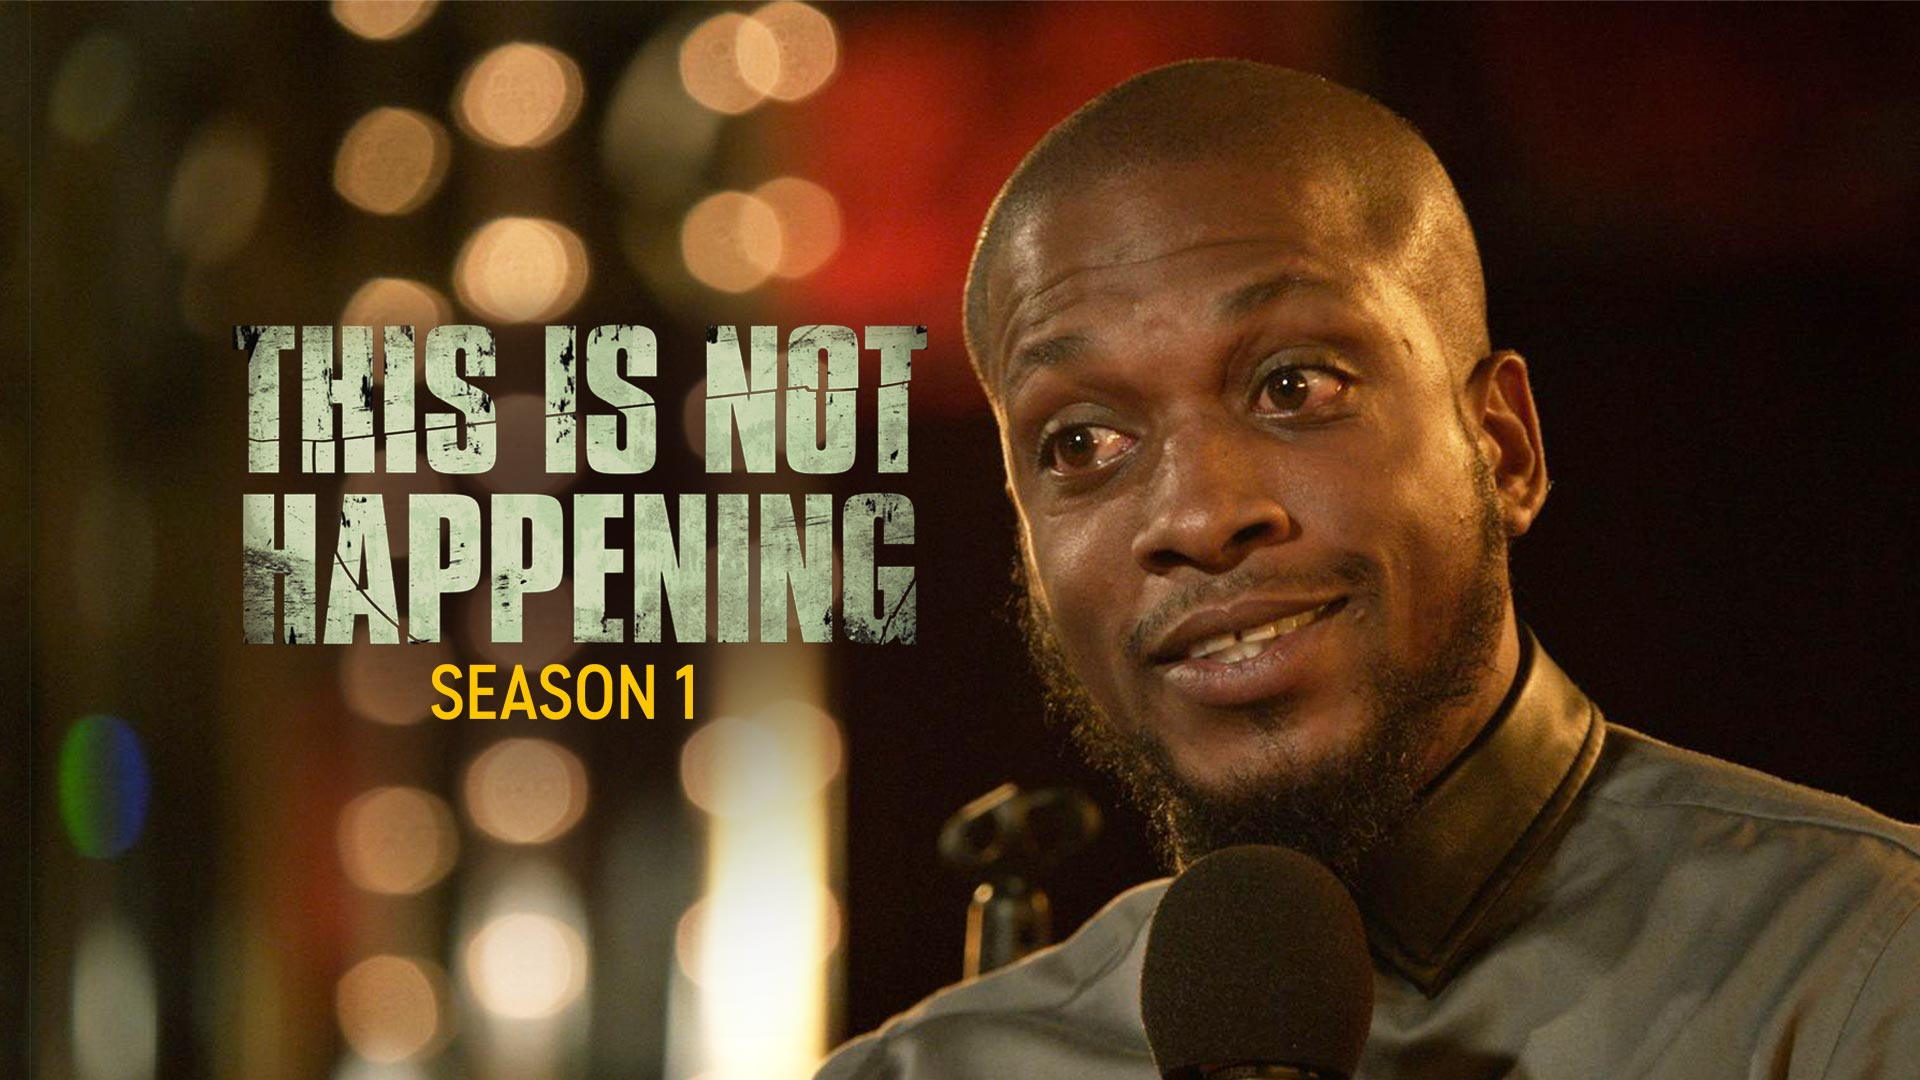 This Is Not Happening Season 1